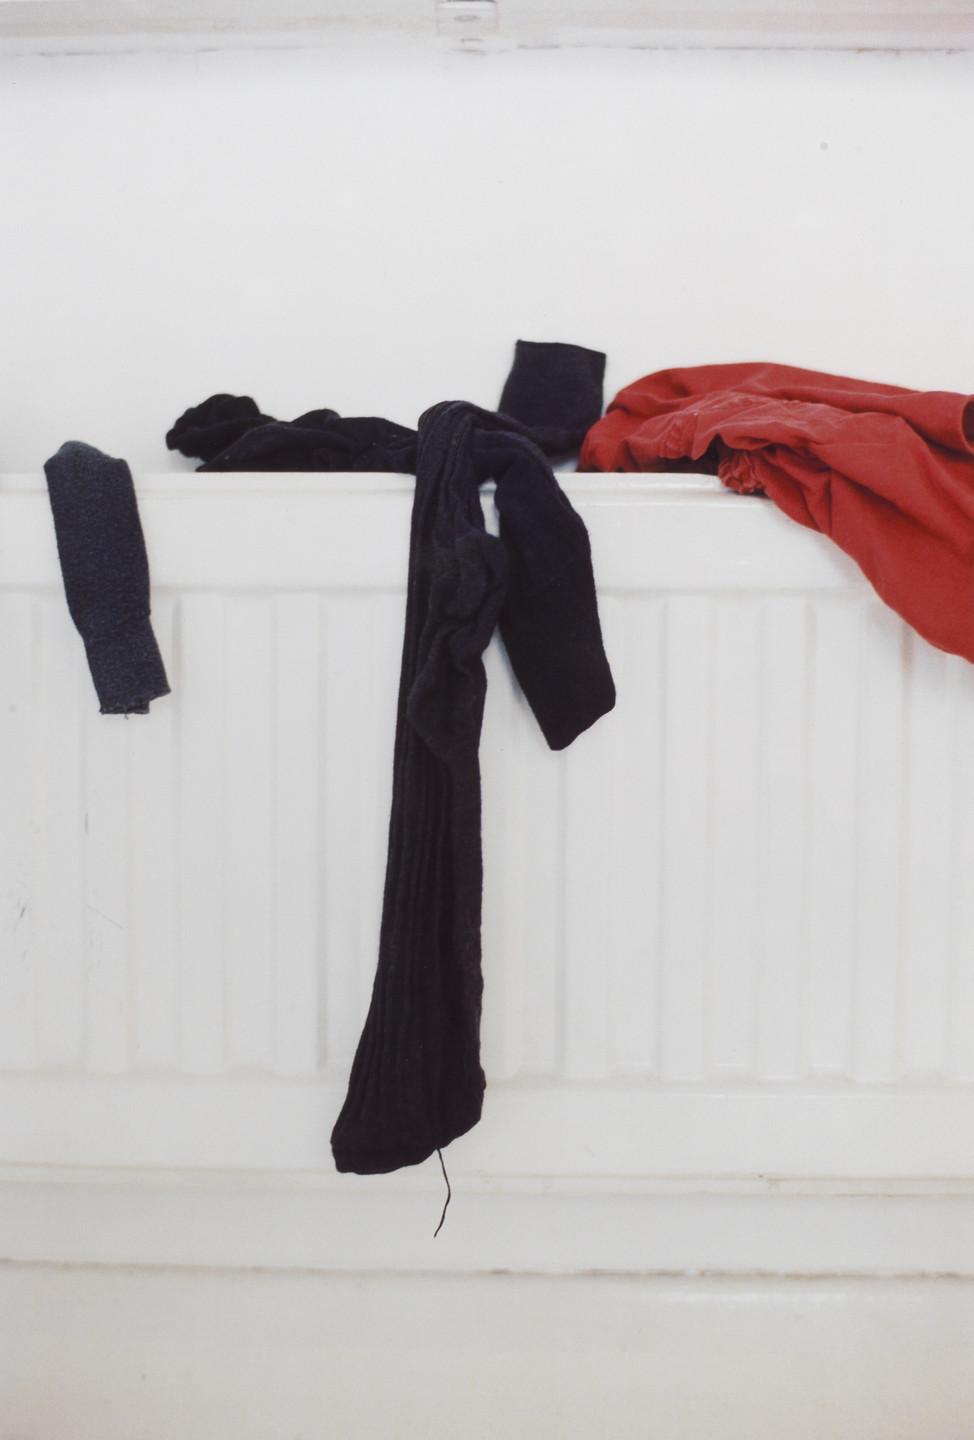 Wolfgang Tillmans. socks on radiator. 1998